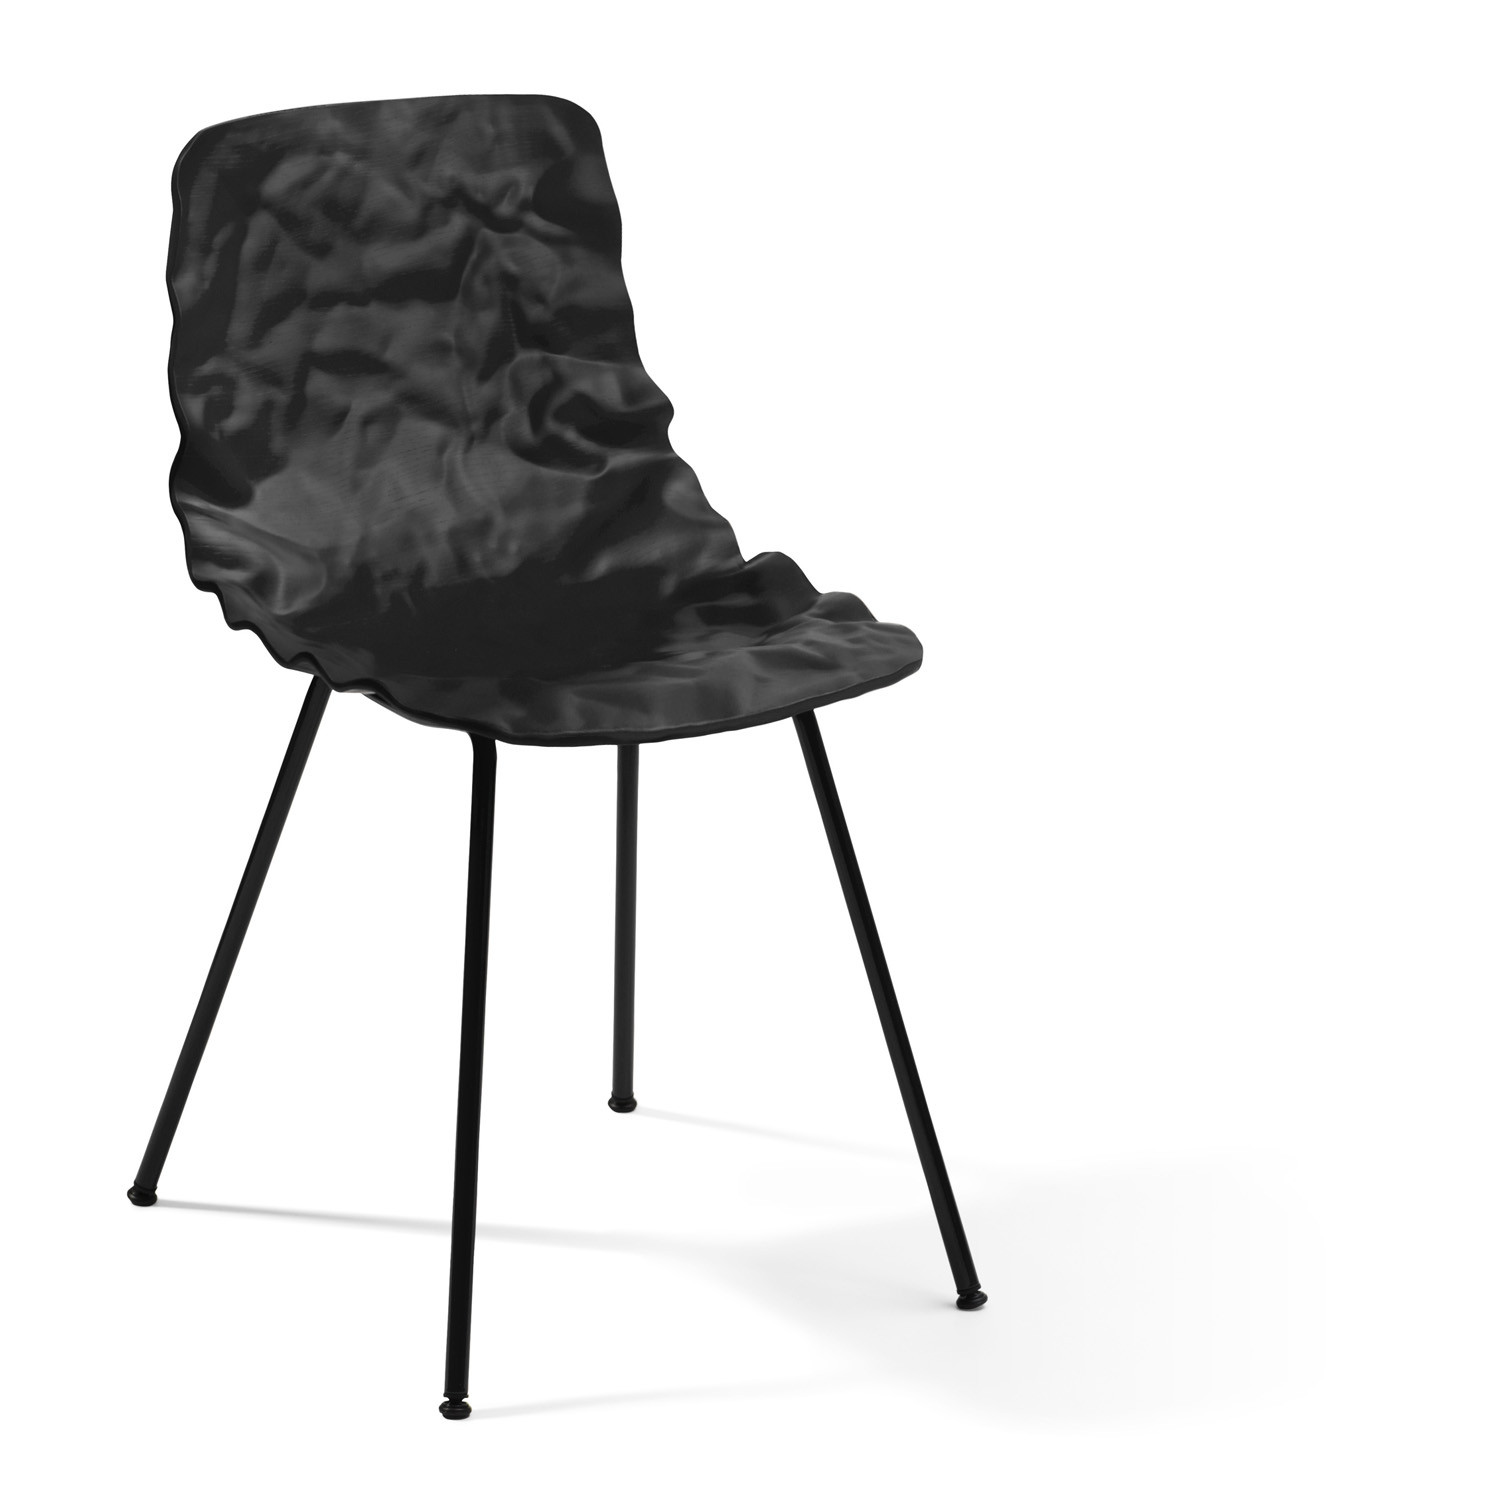 Dent NoStack B502 Cafe Chair